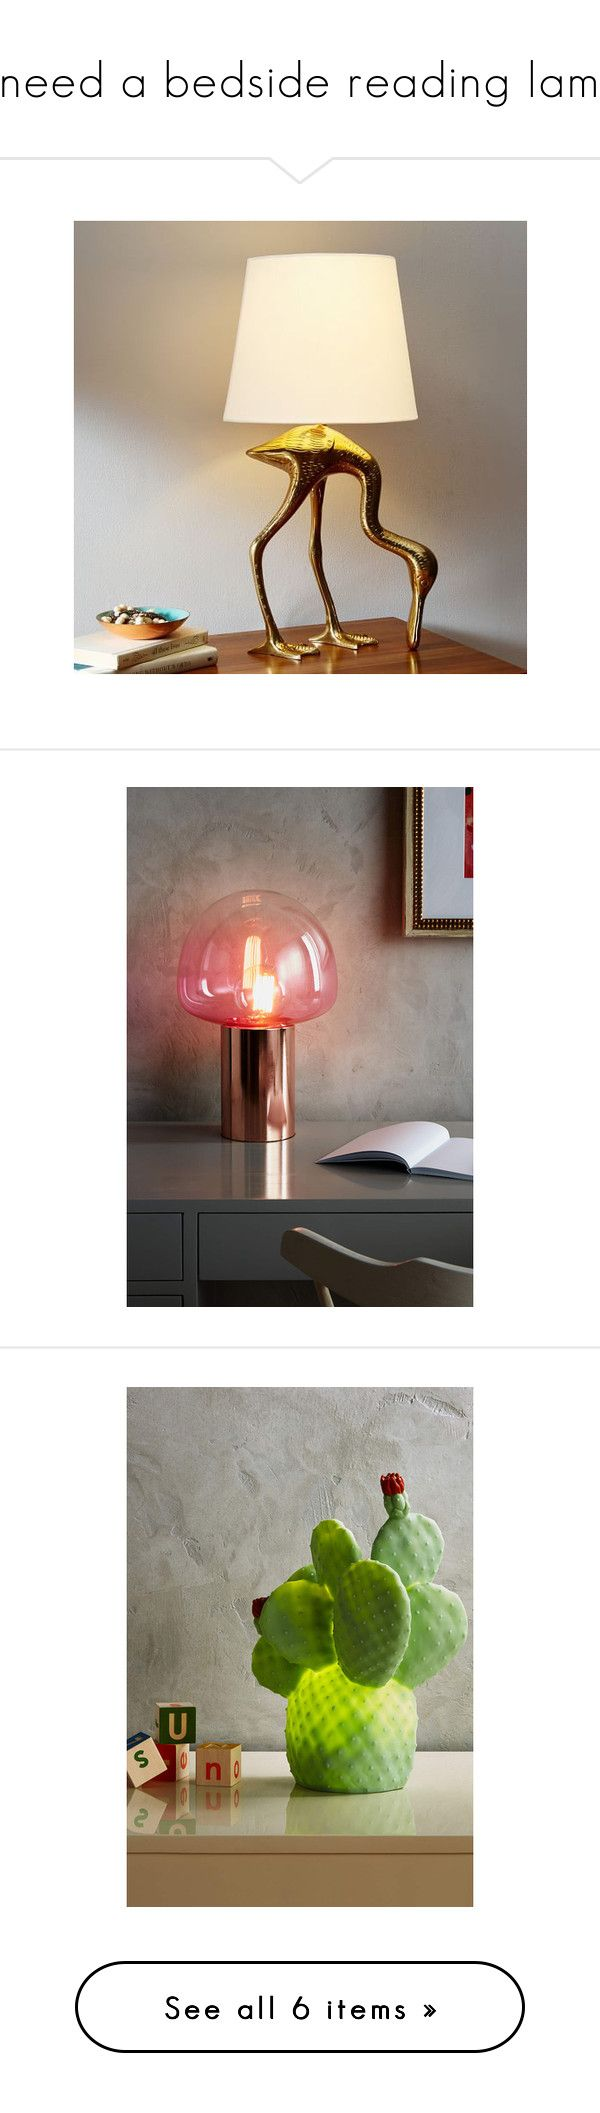 Bedside reading lamps -  I Need A Bedside Reading Lamp By Jenniepie Liked On Polyvore Featuring Home